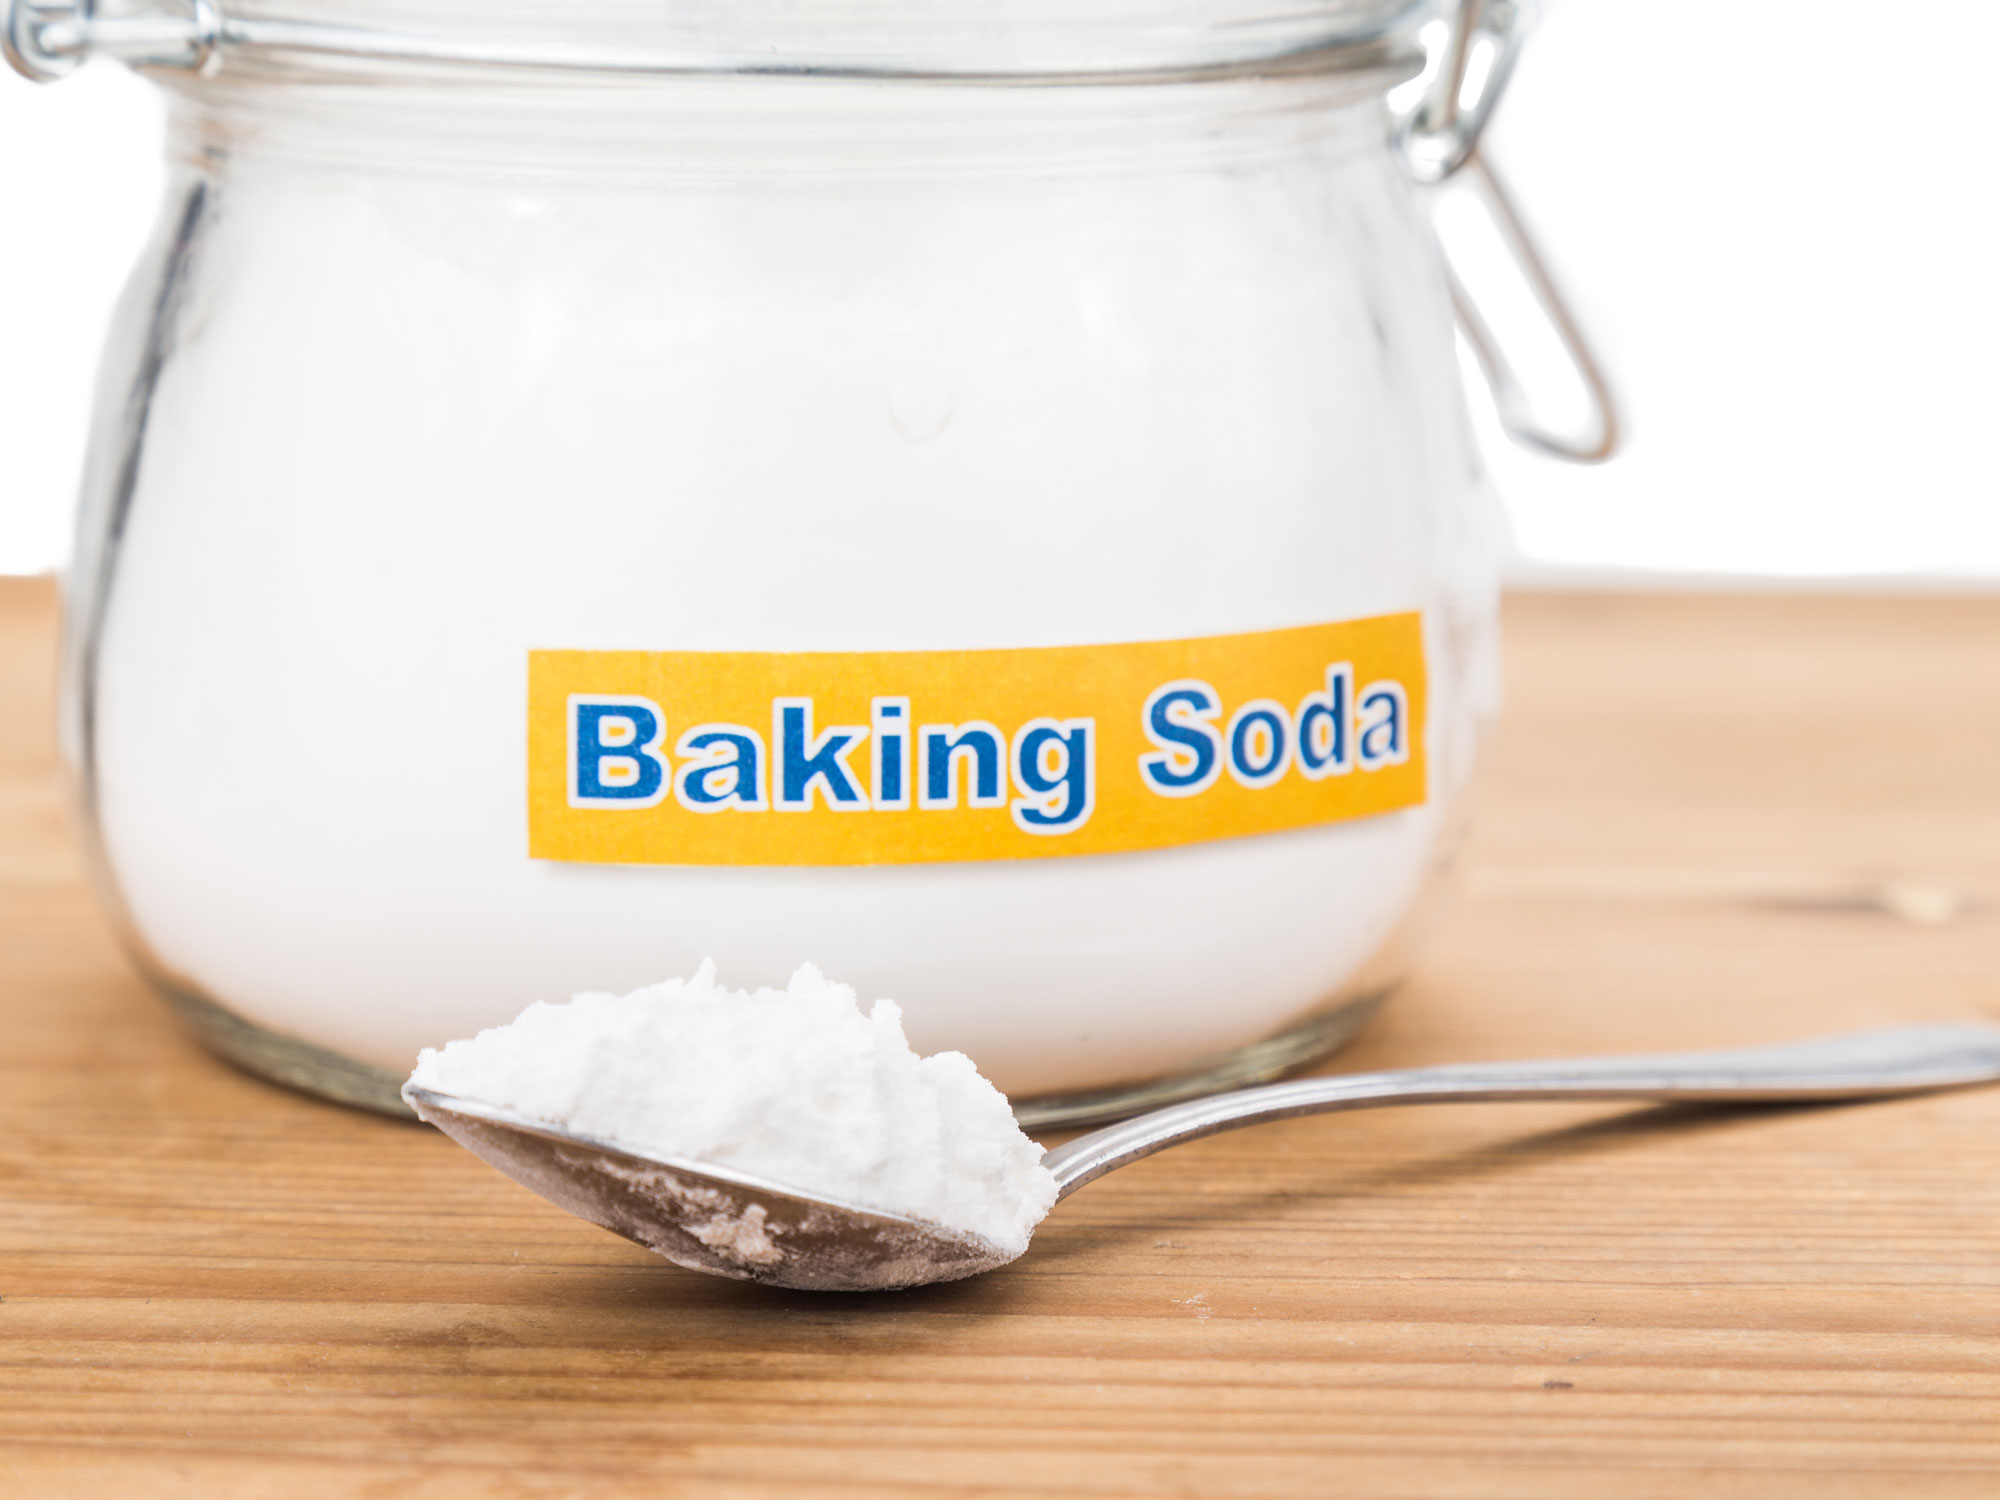 baking soda Baking soda is a must in the laundry room to boost detergent performance, remove odors, soften clothes, clean an iron and control detergent suds.